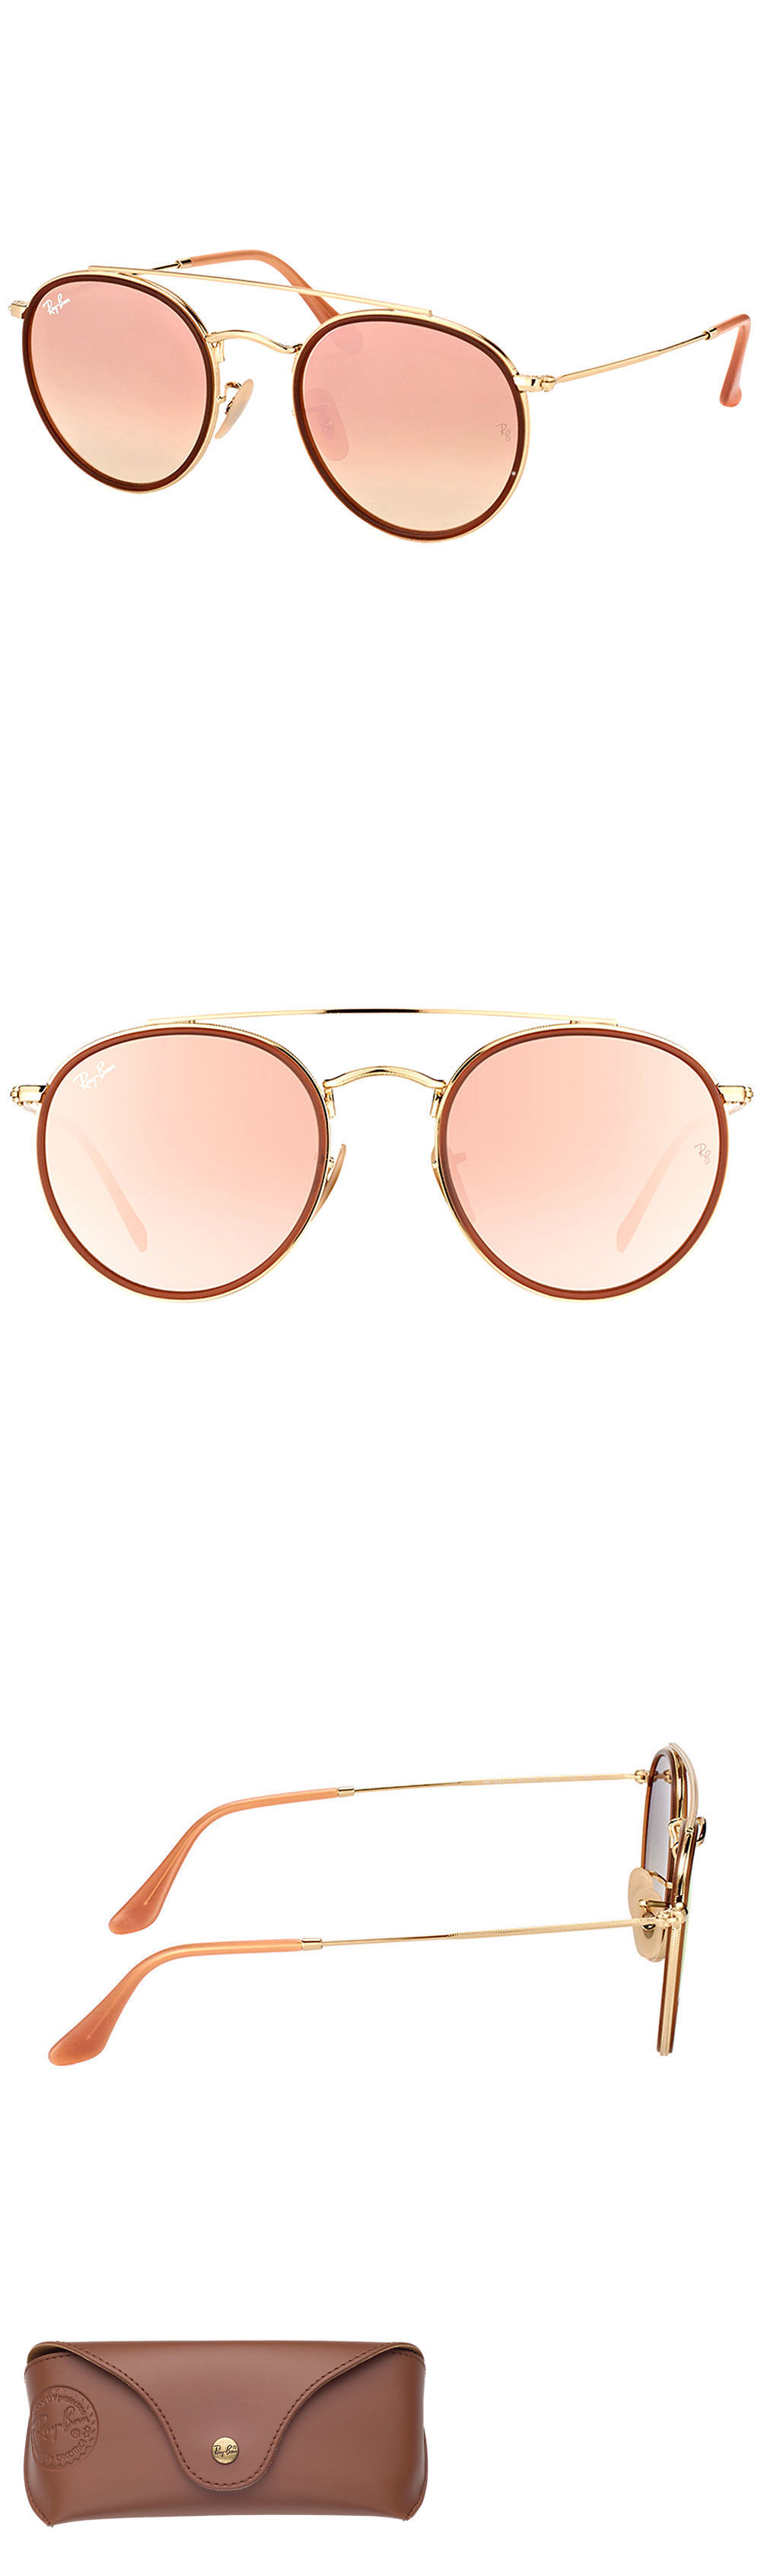 f040377b50 Sunglasses 155189  Ray-Ban Rb3647n 001 7O Round Double Bridge Gold Red  Sunglasses Pink Mirror Lens -  BUY IT NOW ONLY   129.95 on eBay!